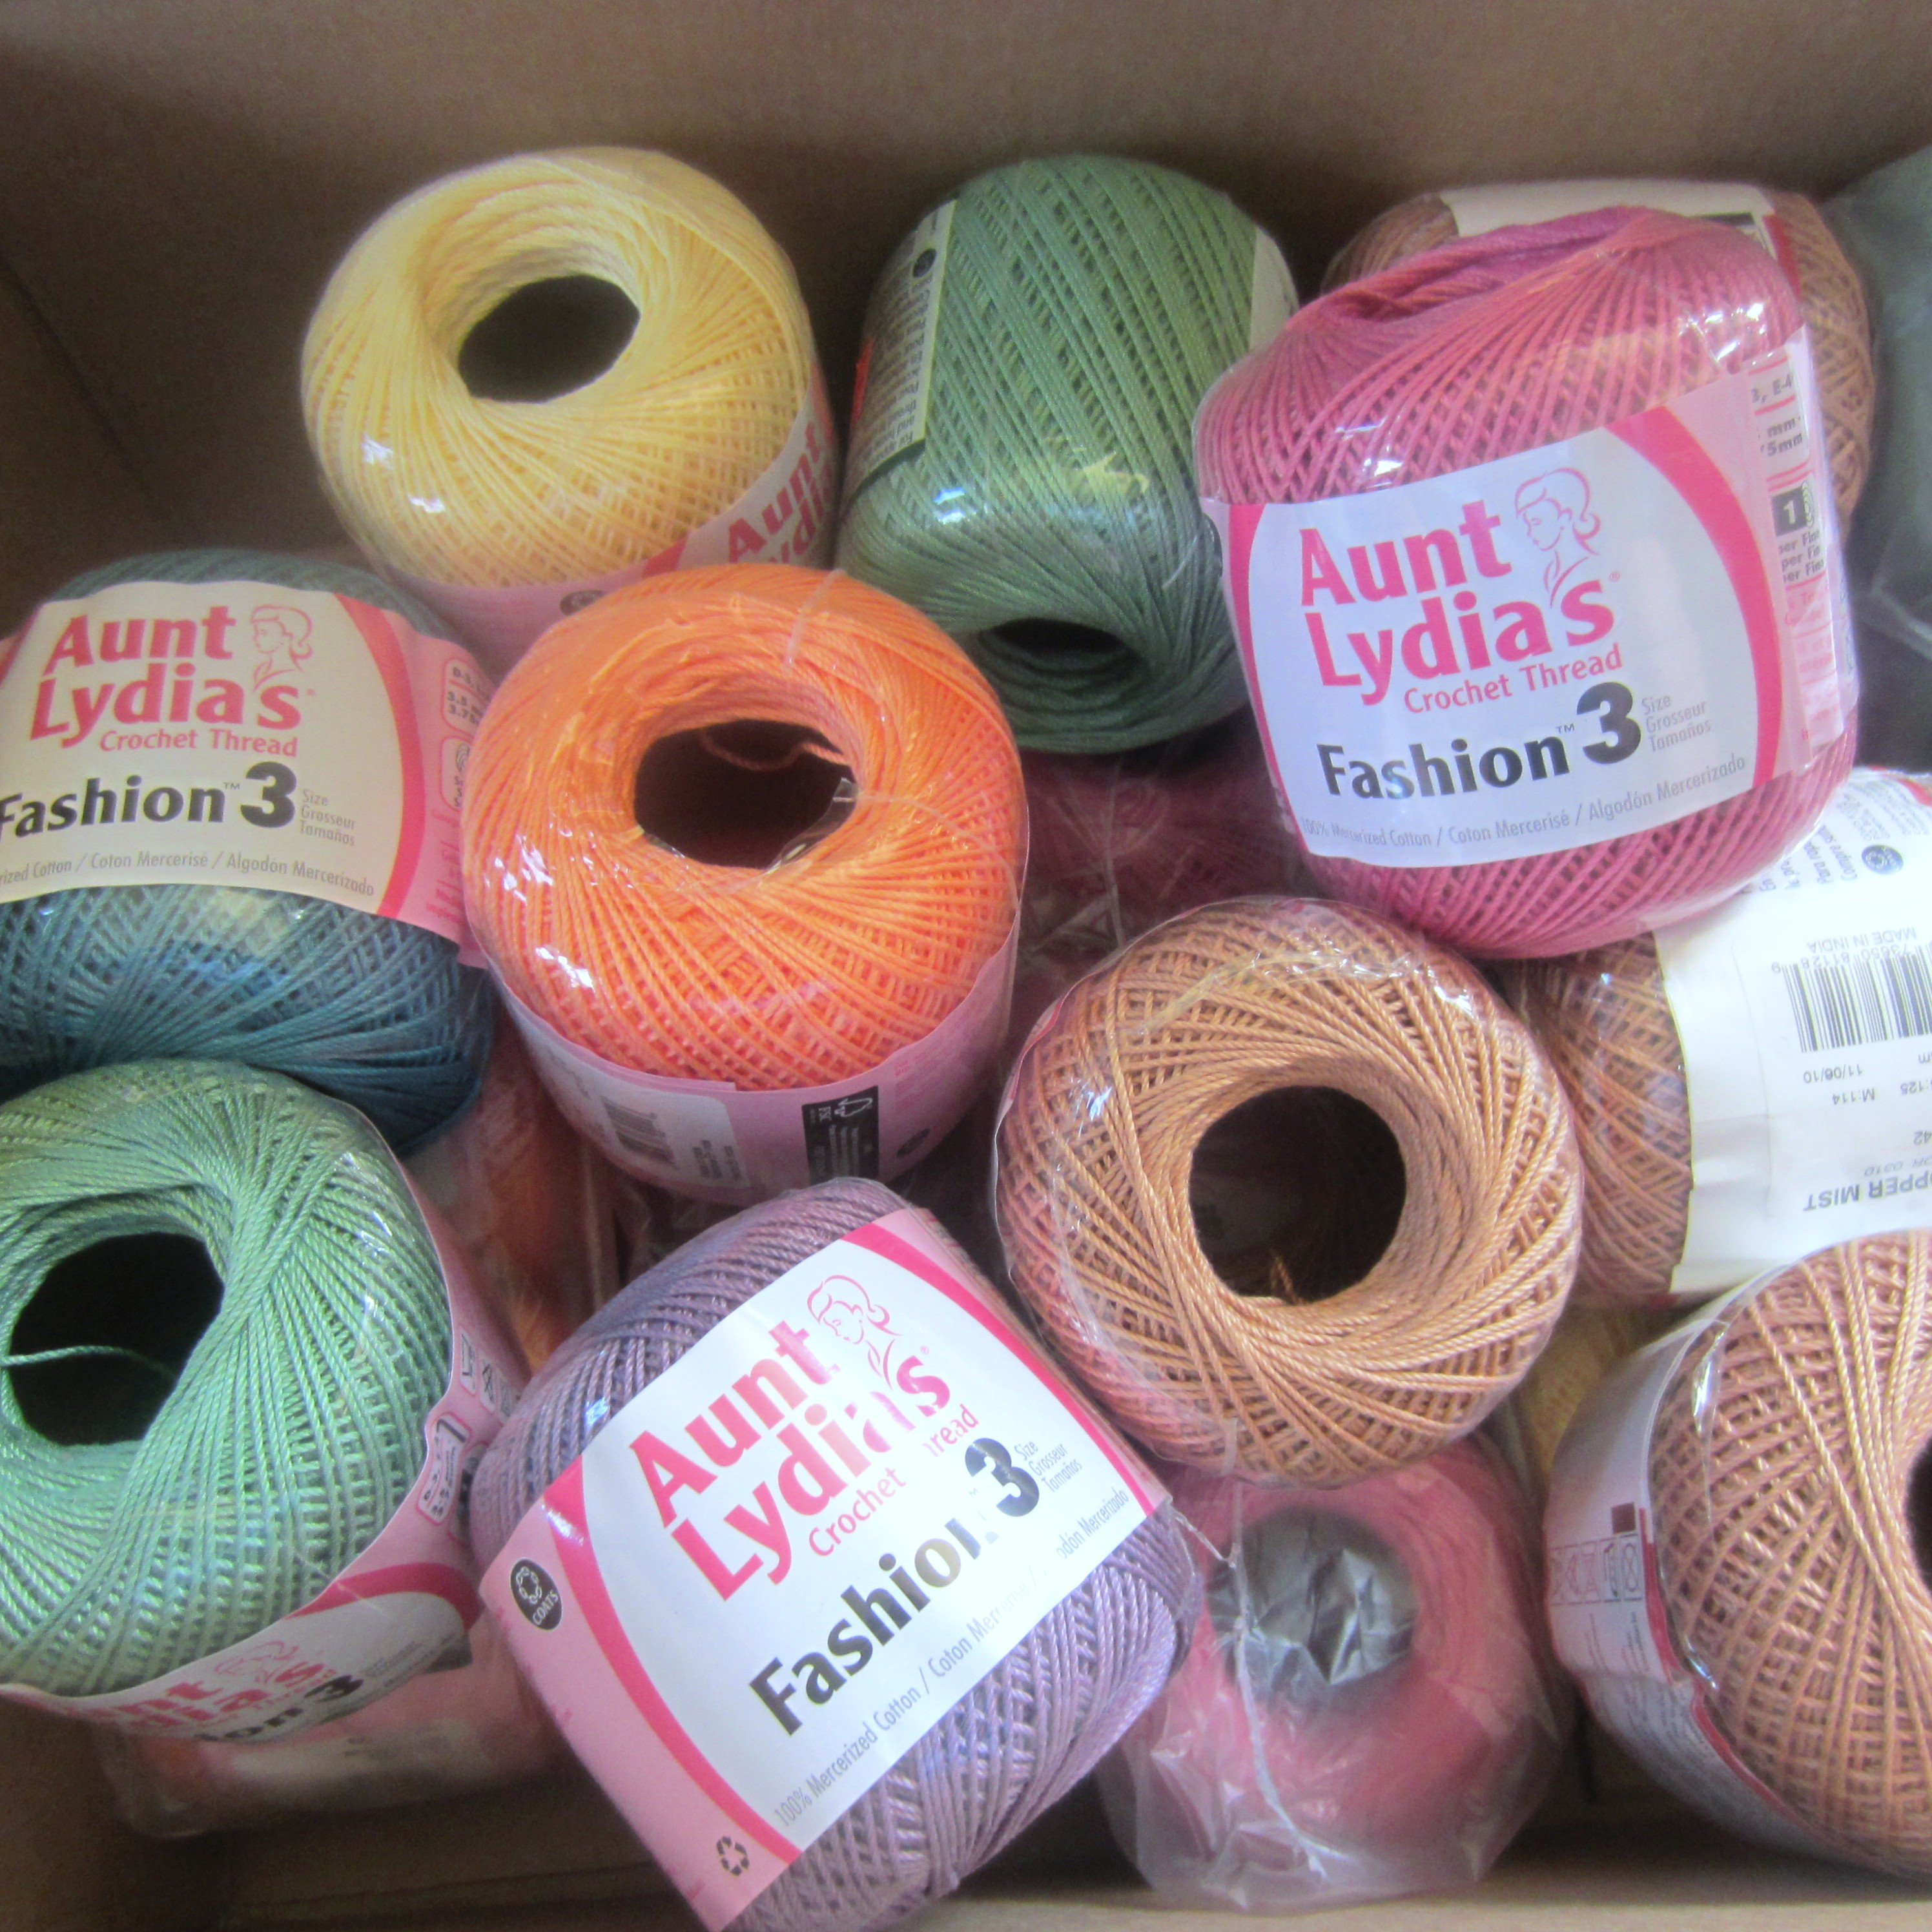 Crochet Thread Sizes Best Of New Stash New Project Aunt Lydia's Fashion 3 Of Fresh 46 Images Crochet Thread Sizes